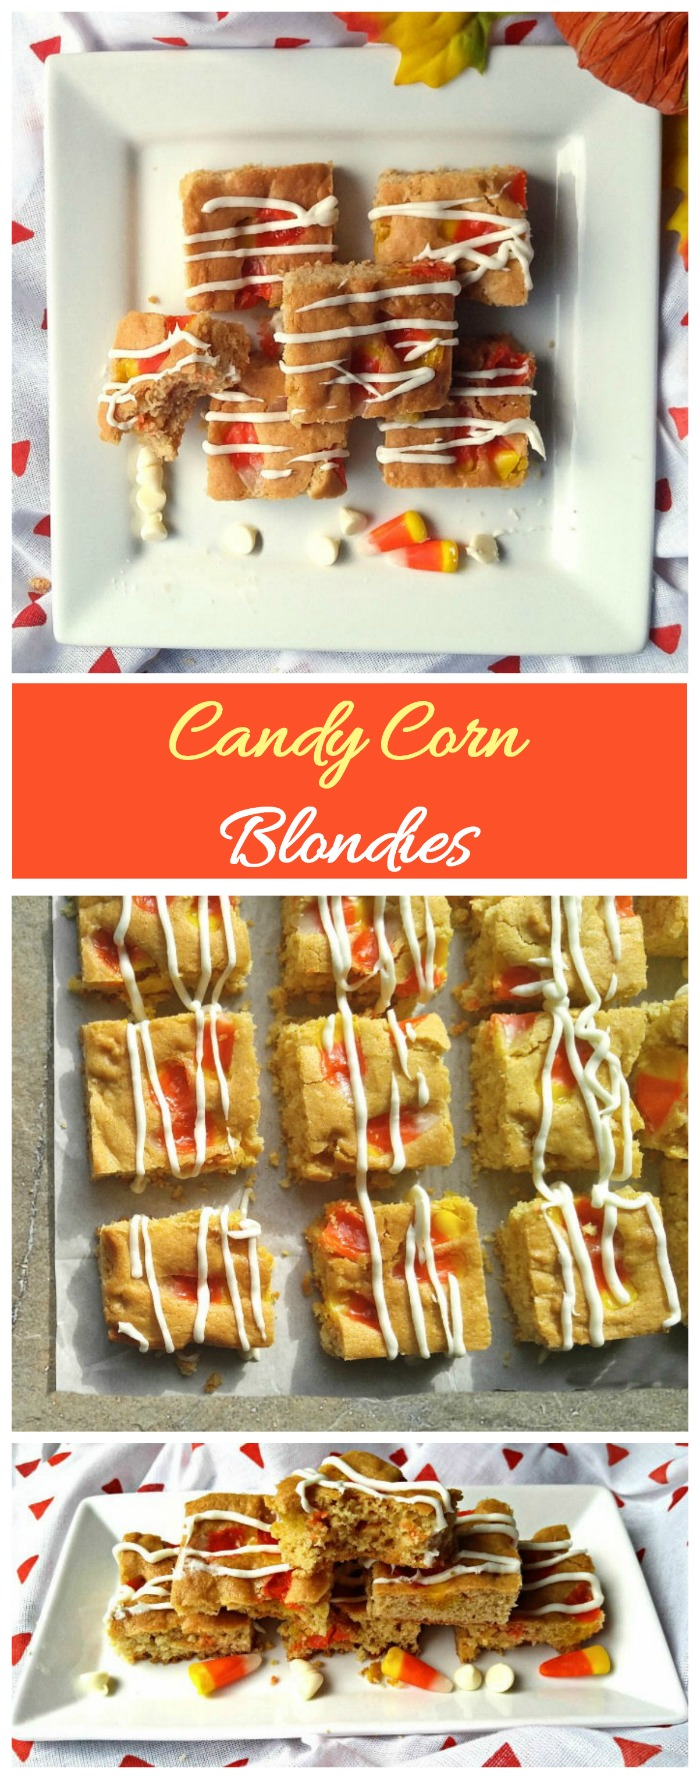 There candy corn blondies are colorful and sweet. They make the perfect Halloween party treat. #candycorn #Halloweenrecipes